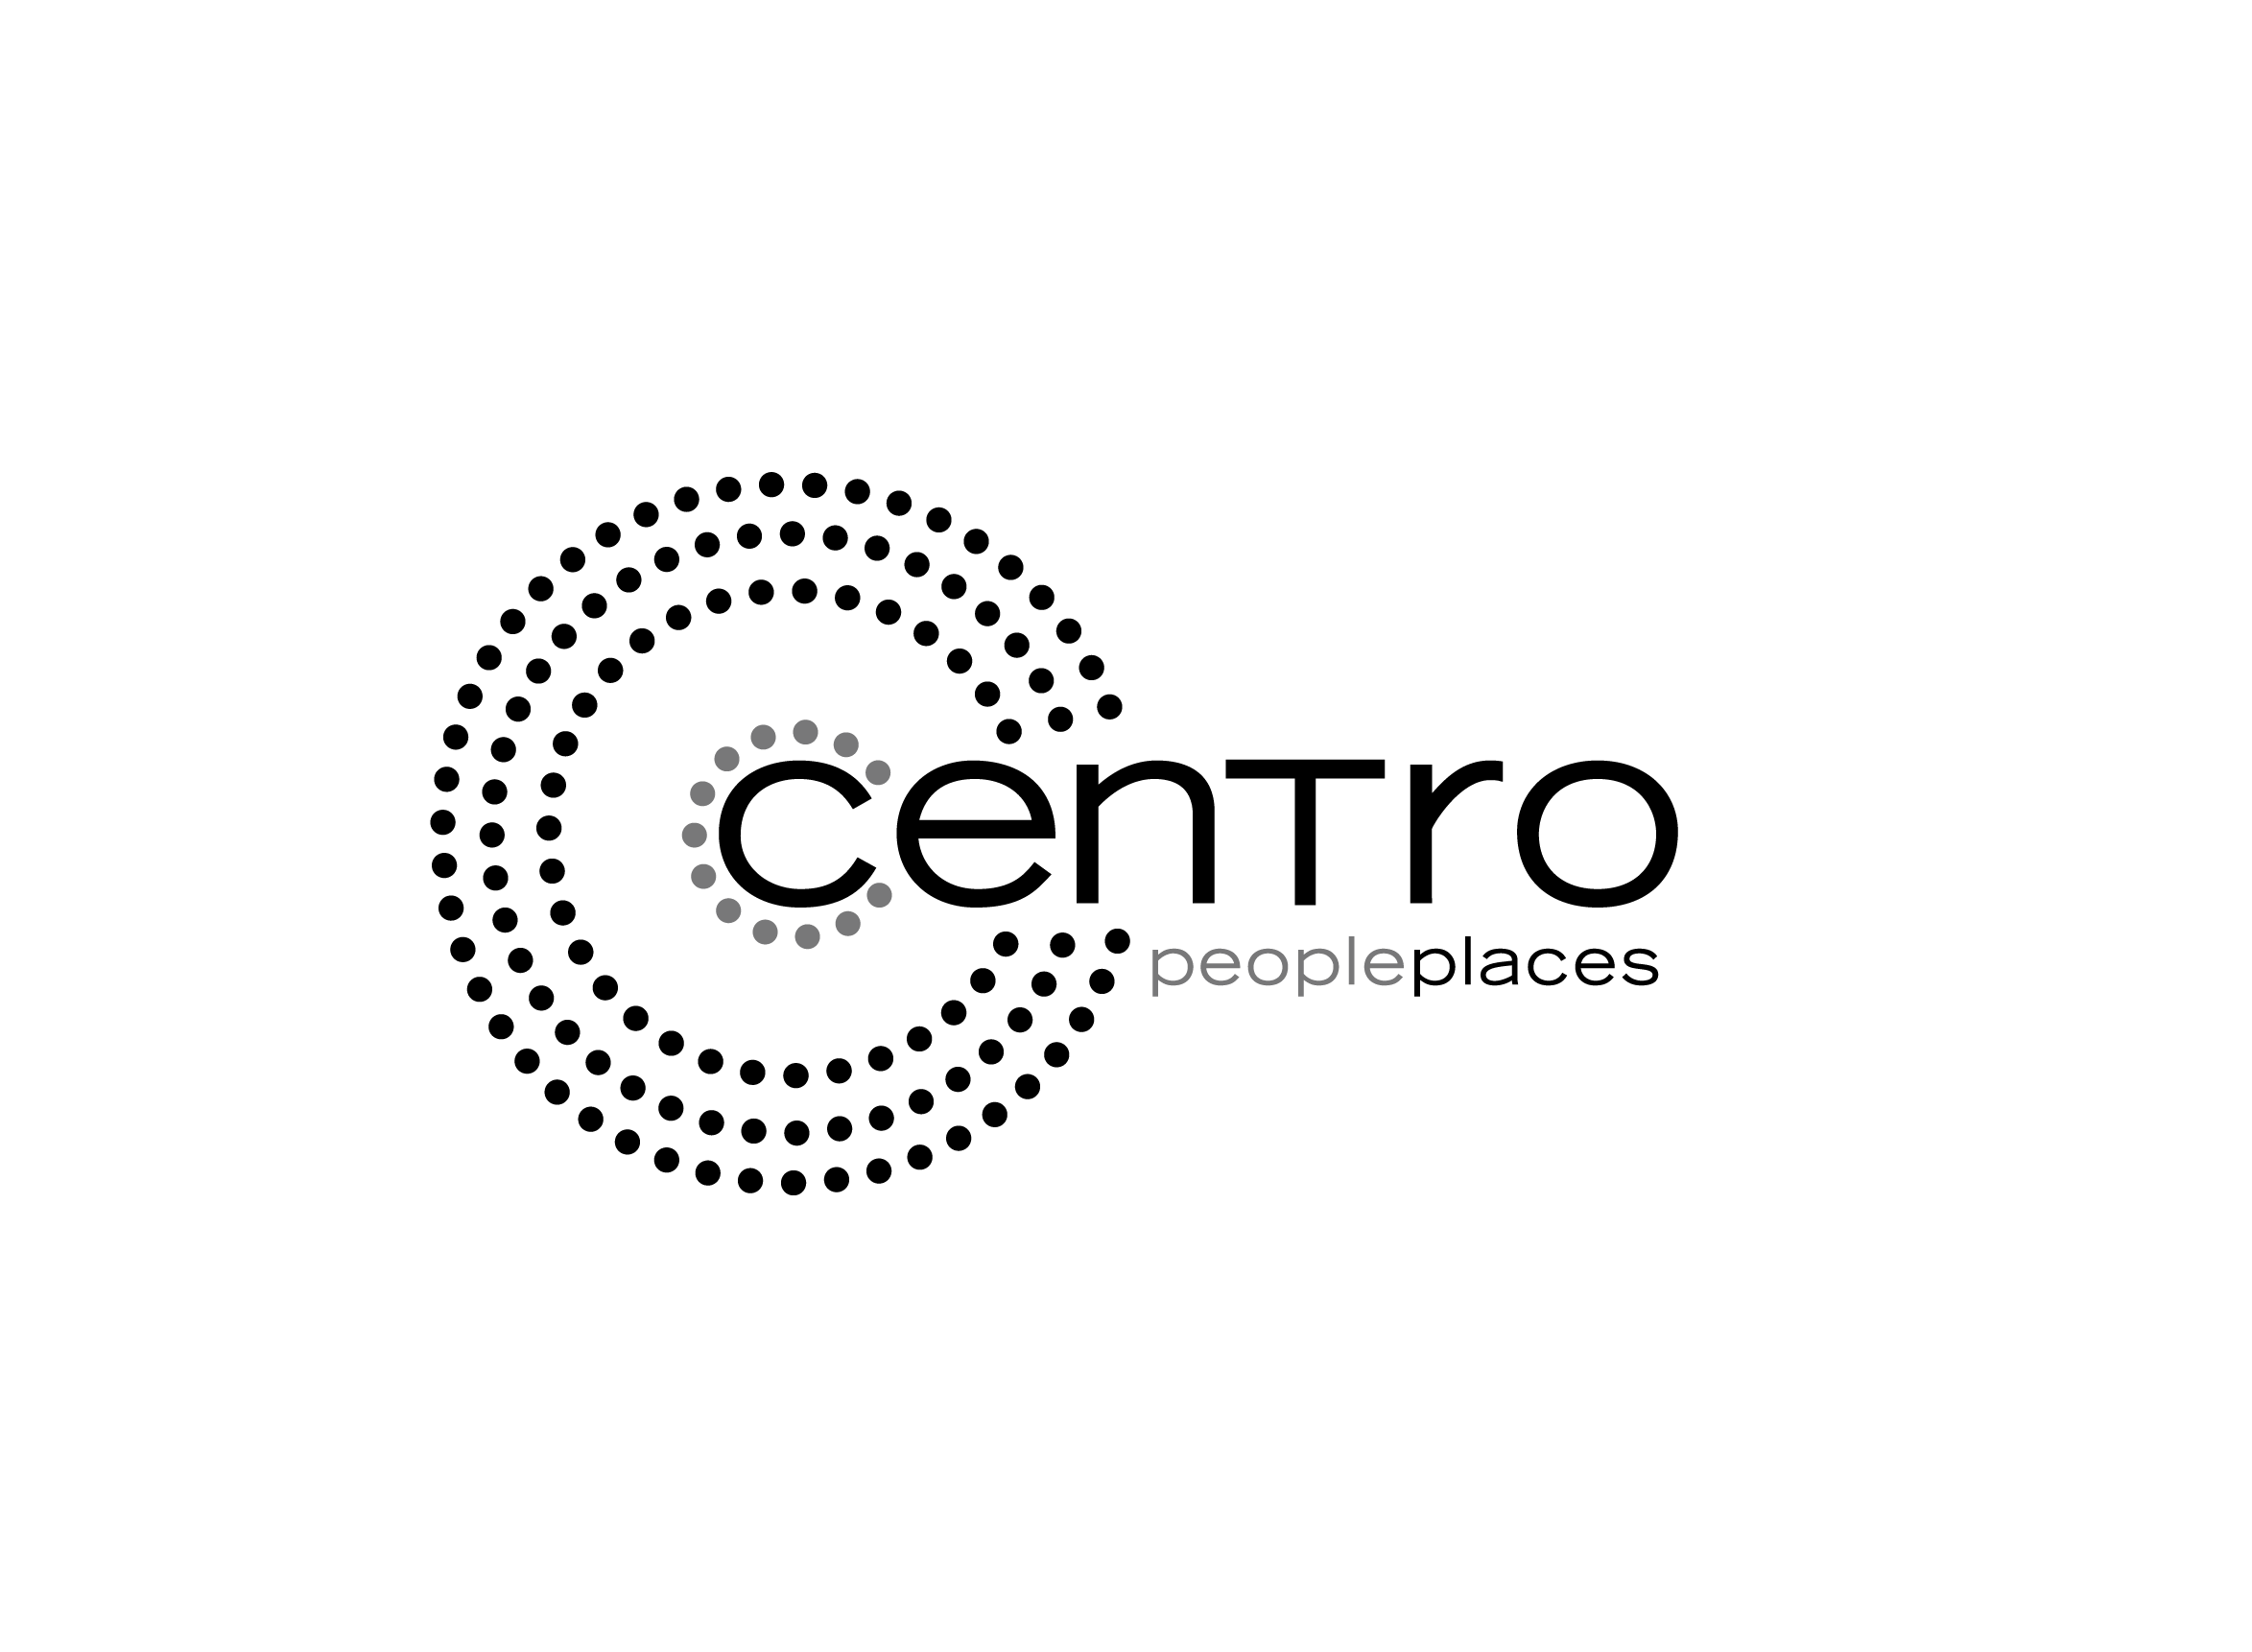 centro_tag-01.png